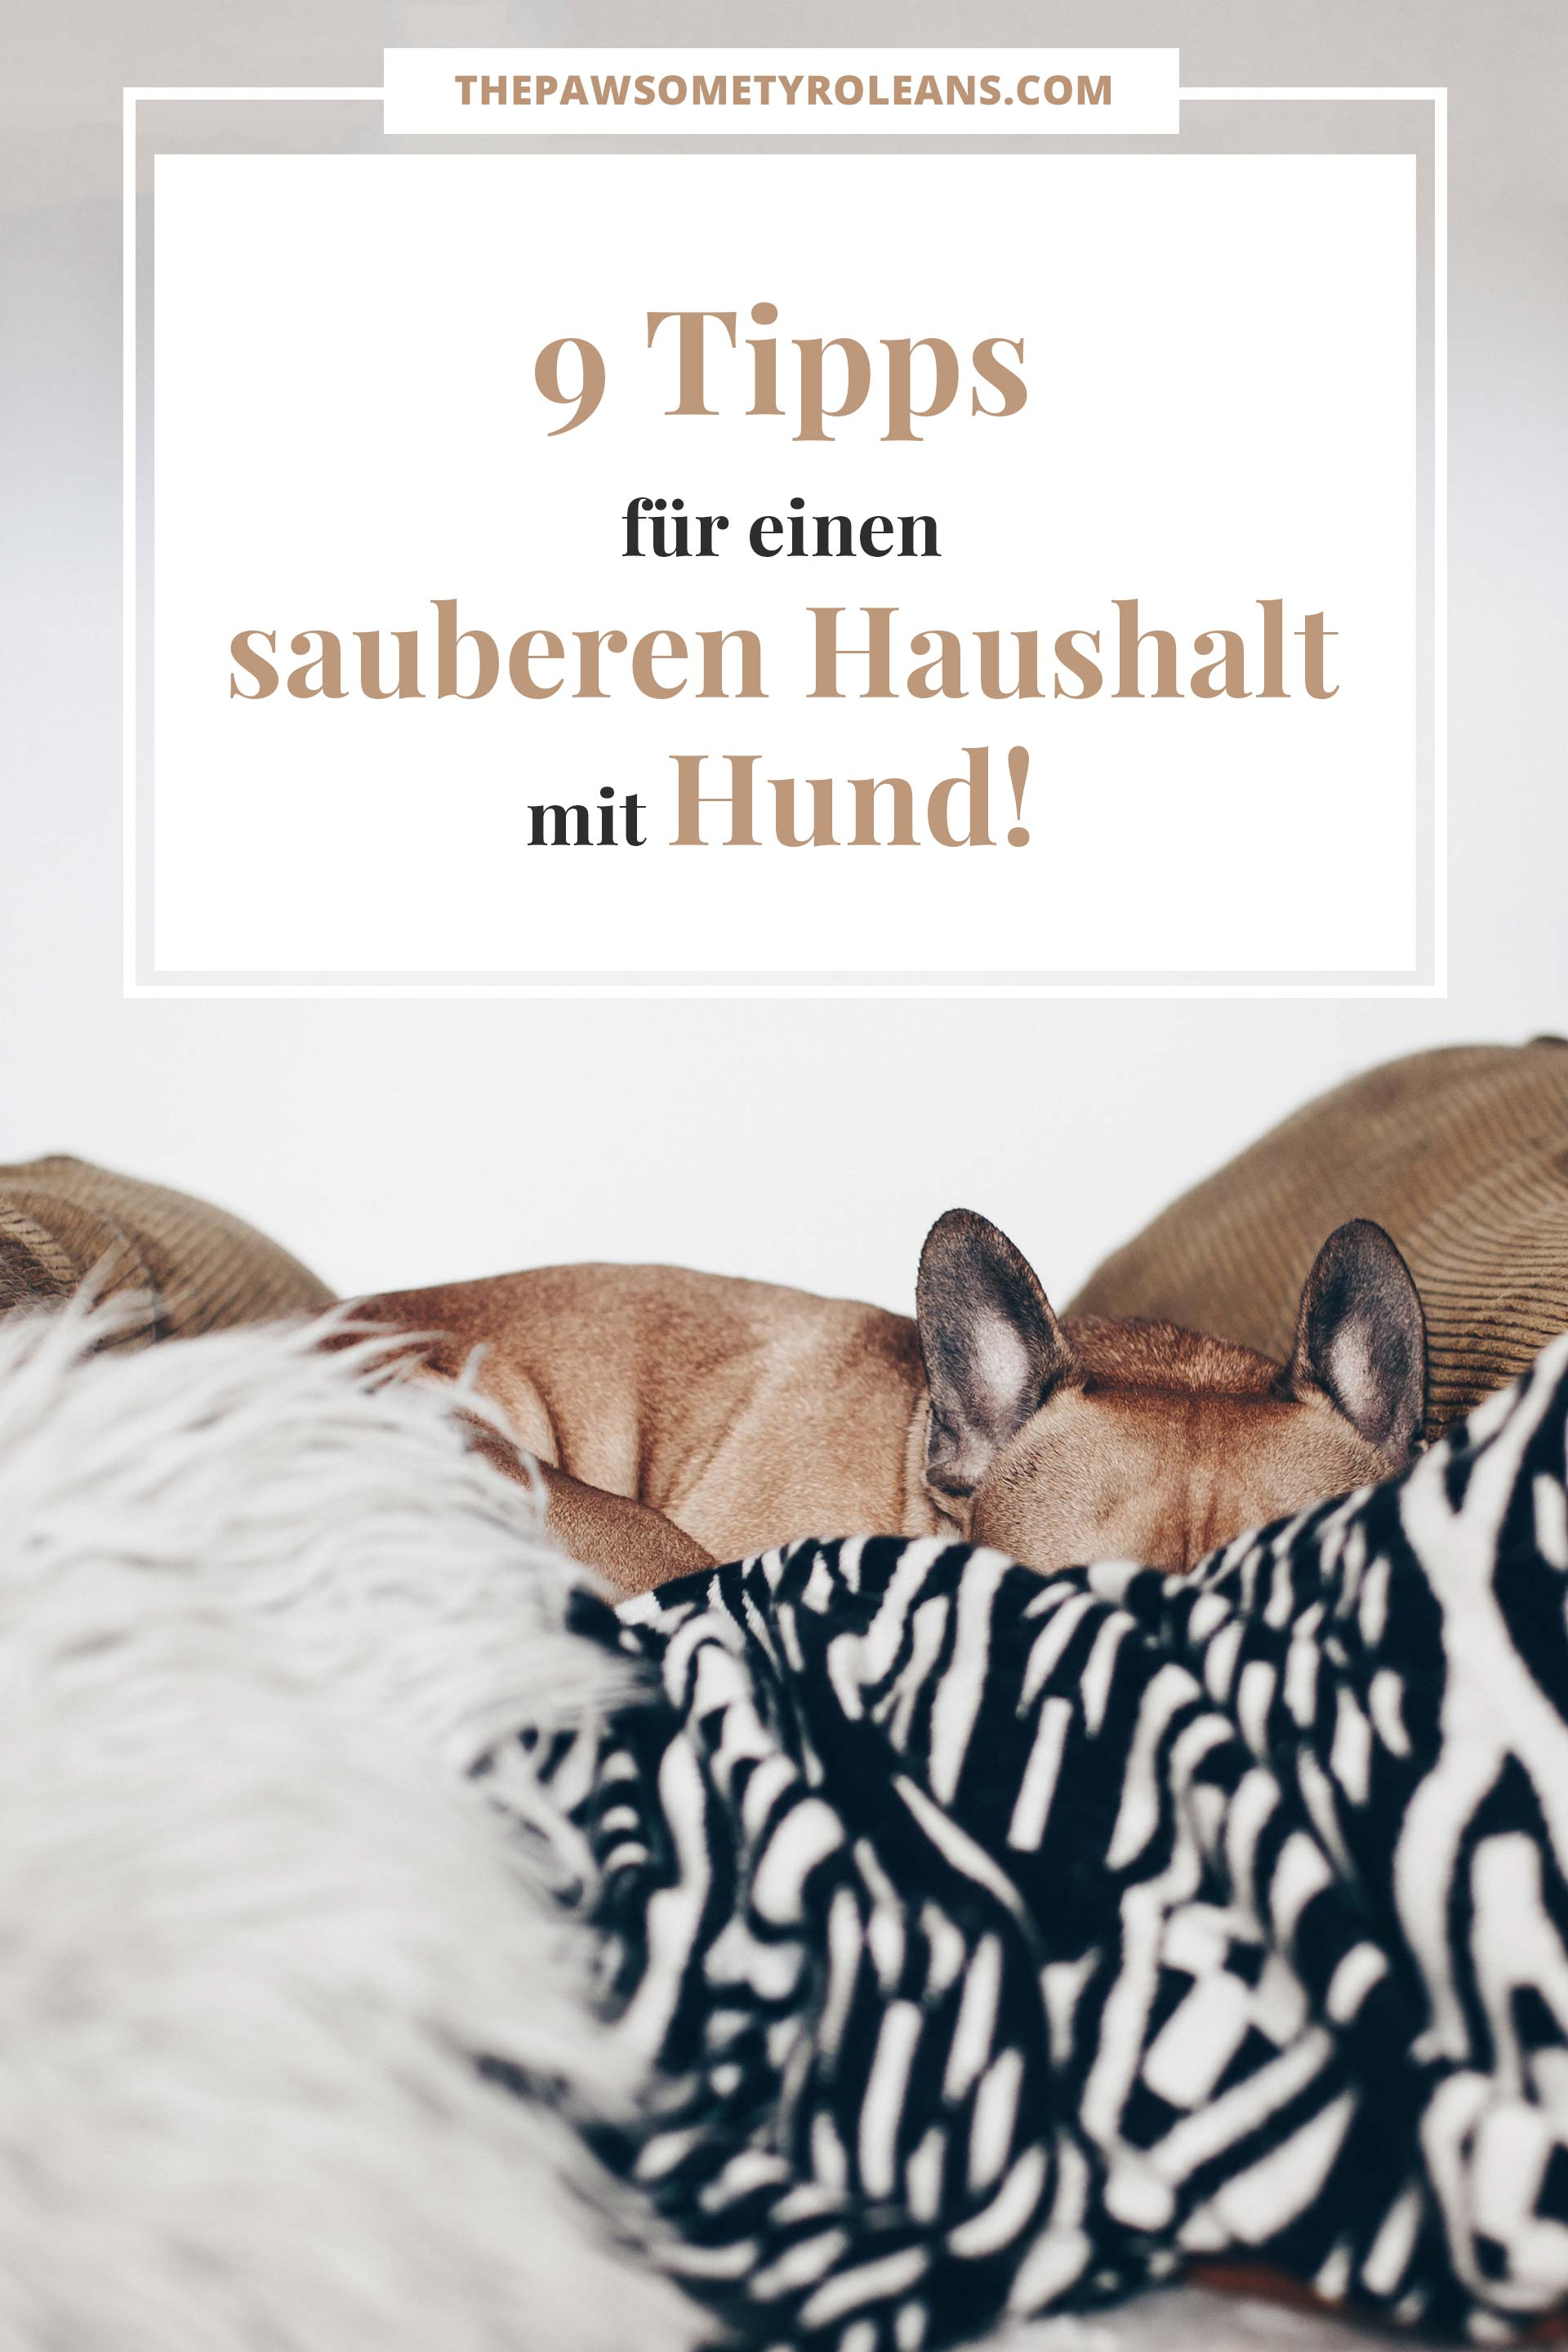 meine 9 tipps f r einen sauberen haushalt mit hund. Black Bedroom Furniture Sets. Home Design Ideas